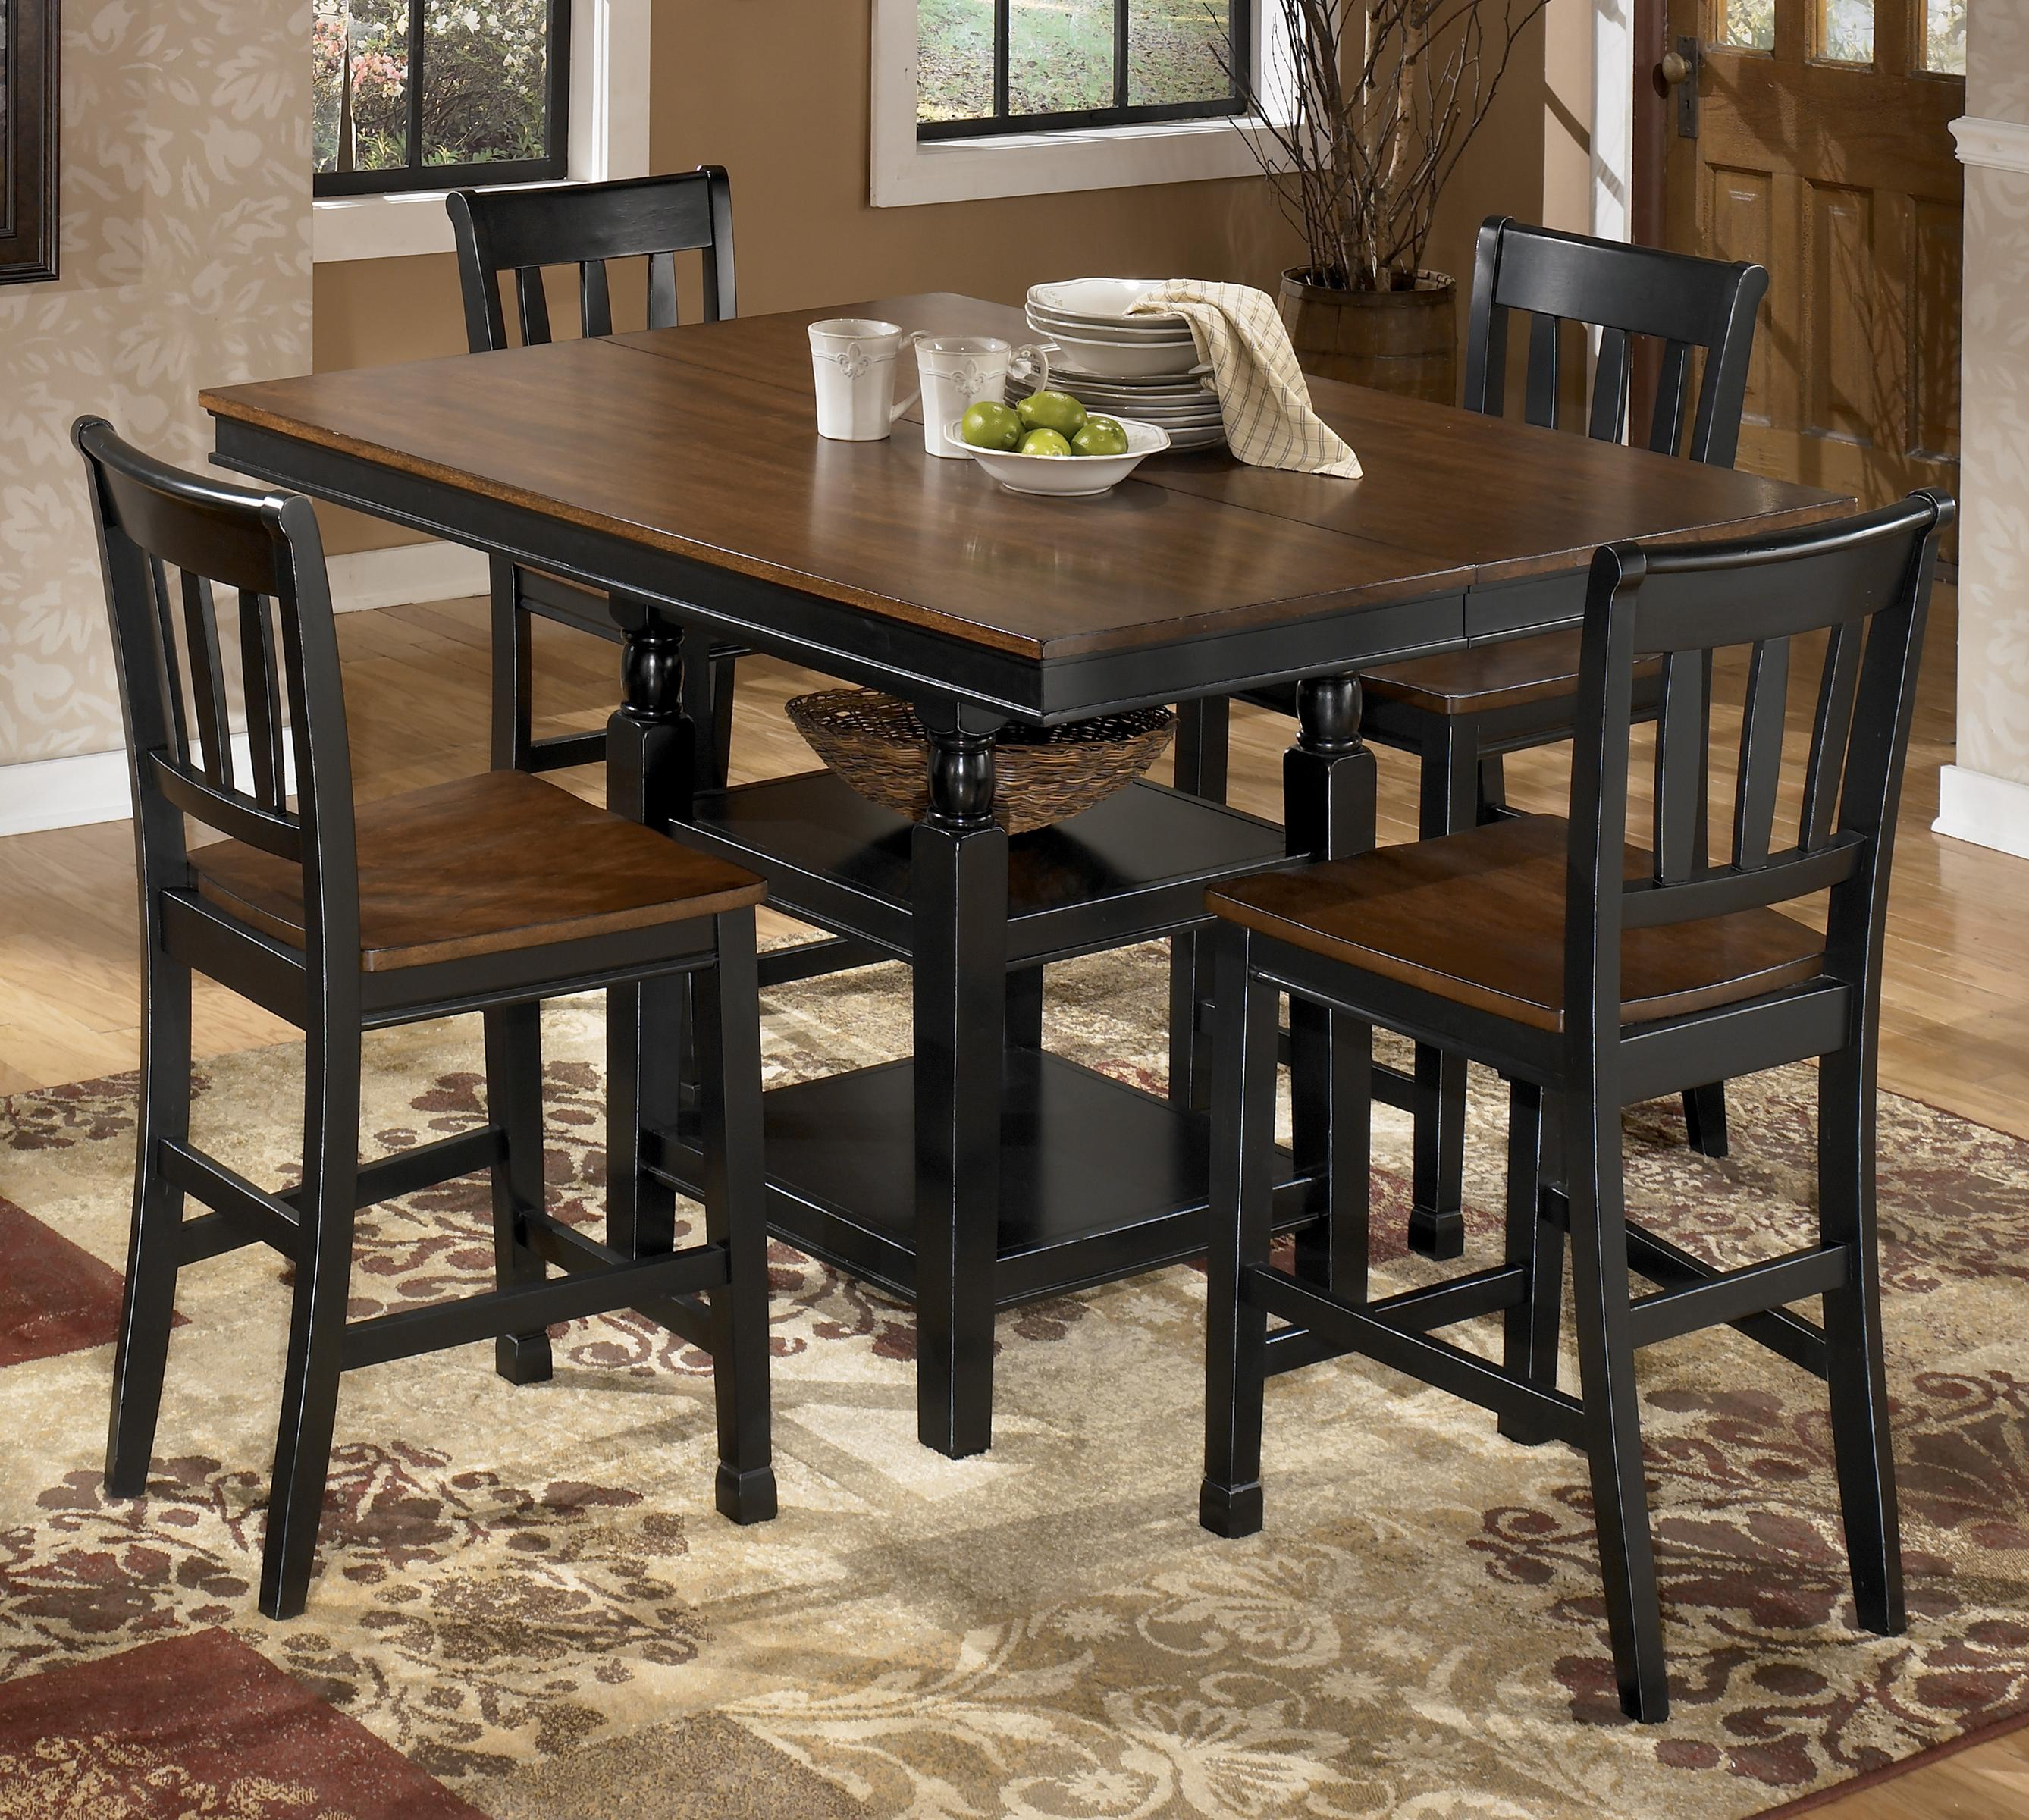 Signature Design by Ashley Owingsville 5-Piece Counter Extension Table Set - Item Number: D580-32+4x224